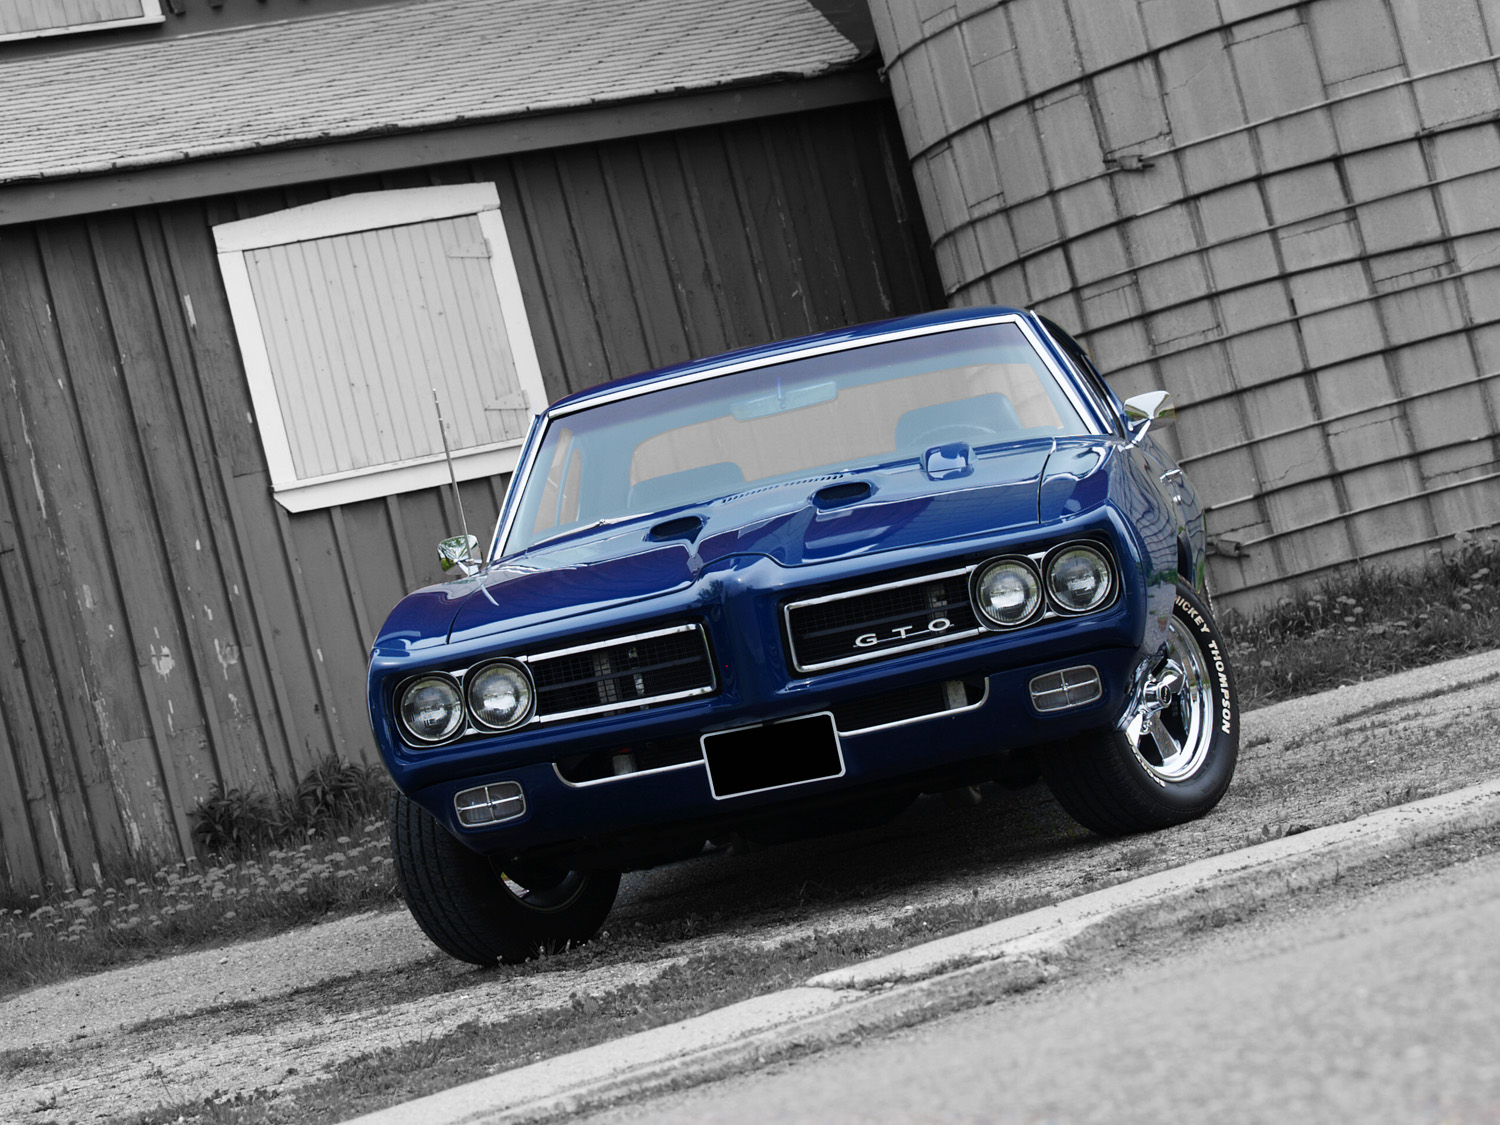 Jimjudge likewise Hqdefault in addition Pontiac Tempest Steering Wheels as well Gbc Lrg additionally E O. on pontiac gto muscle car